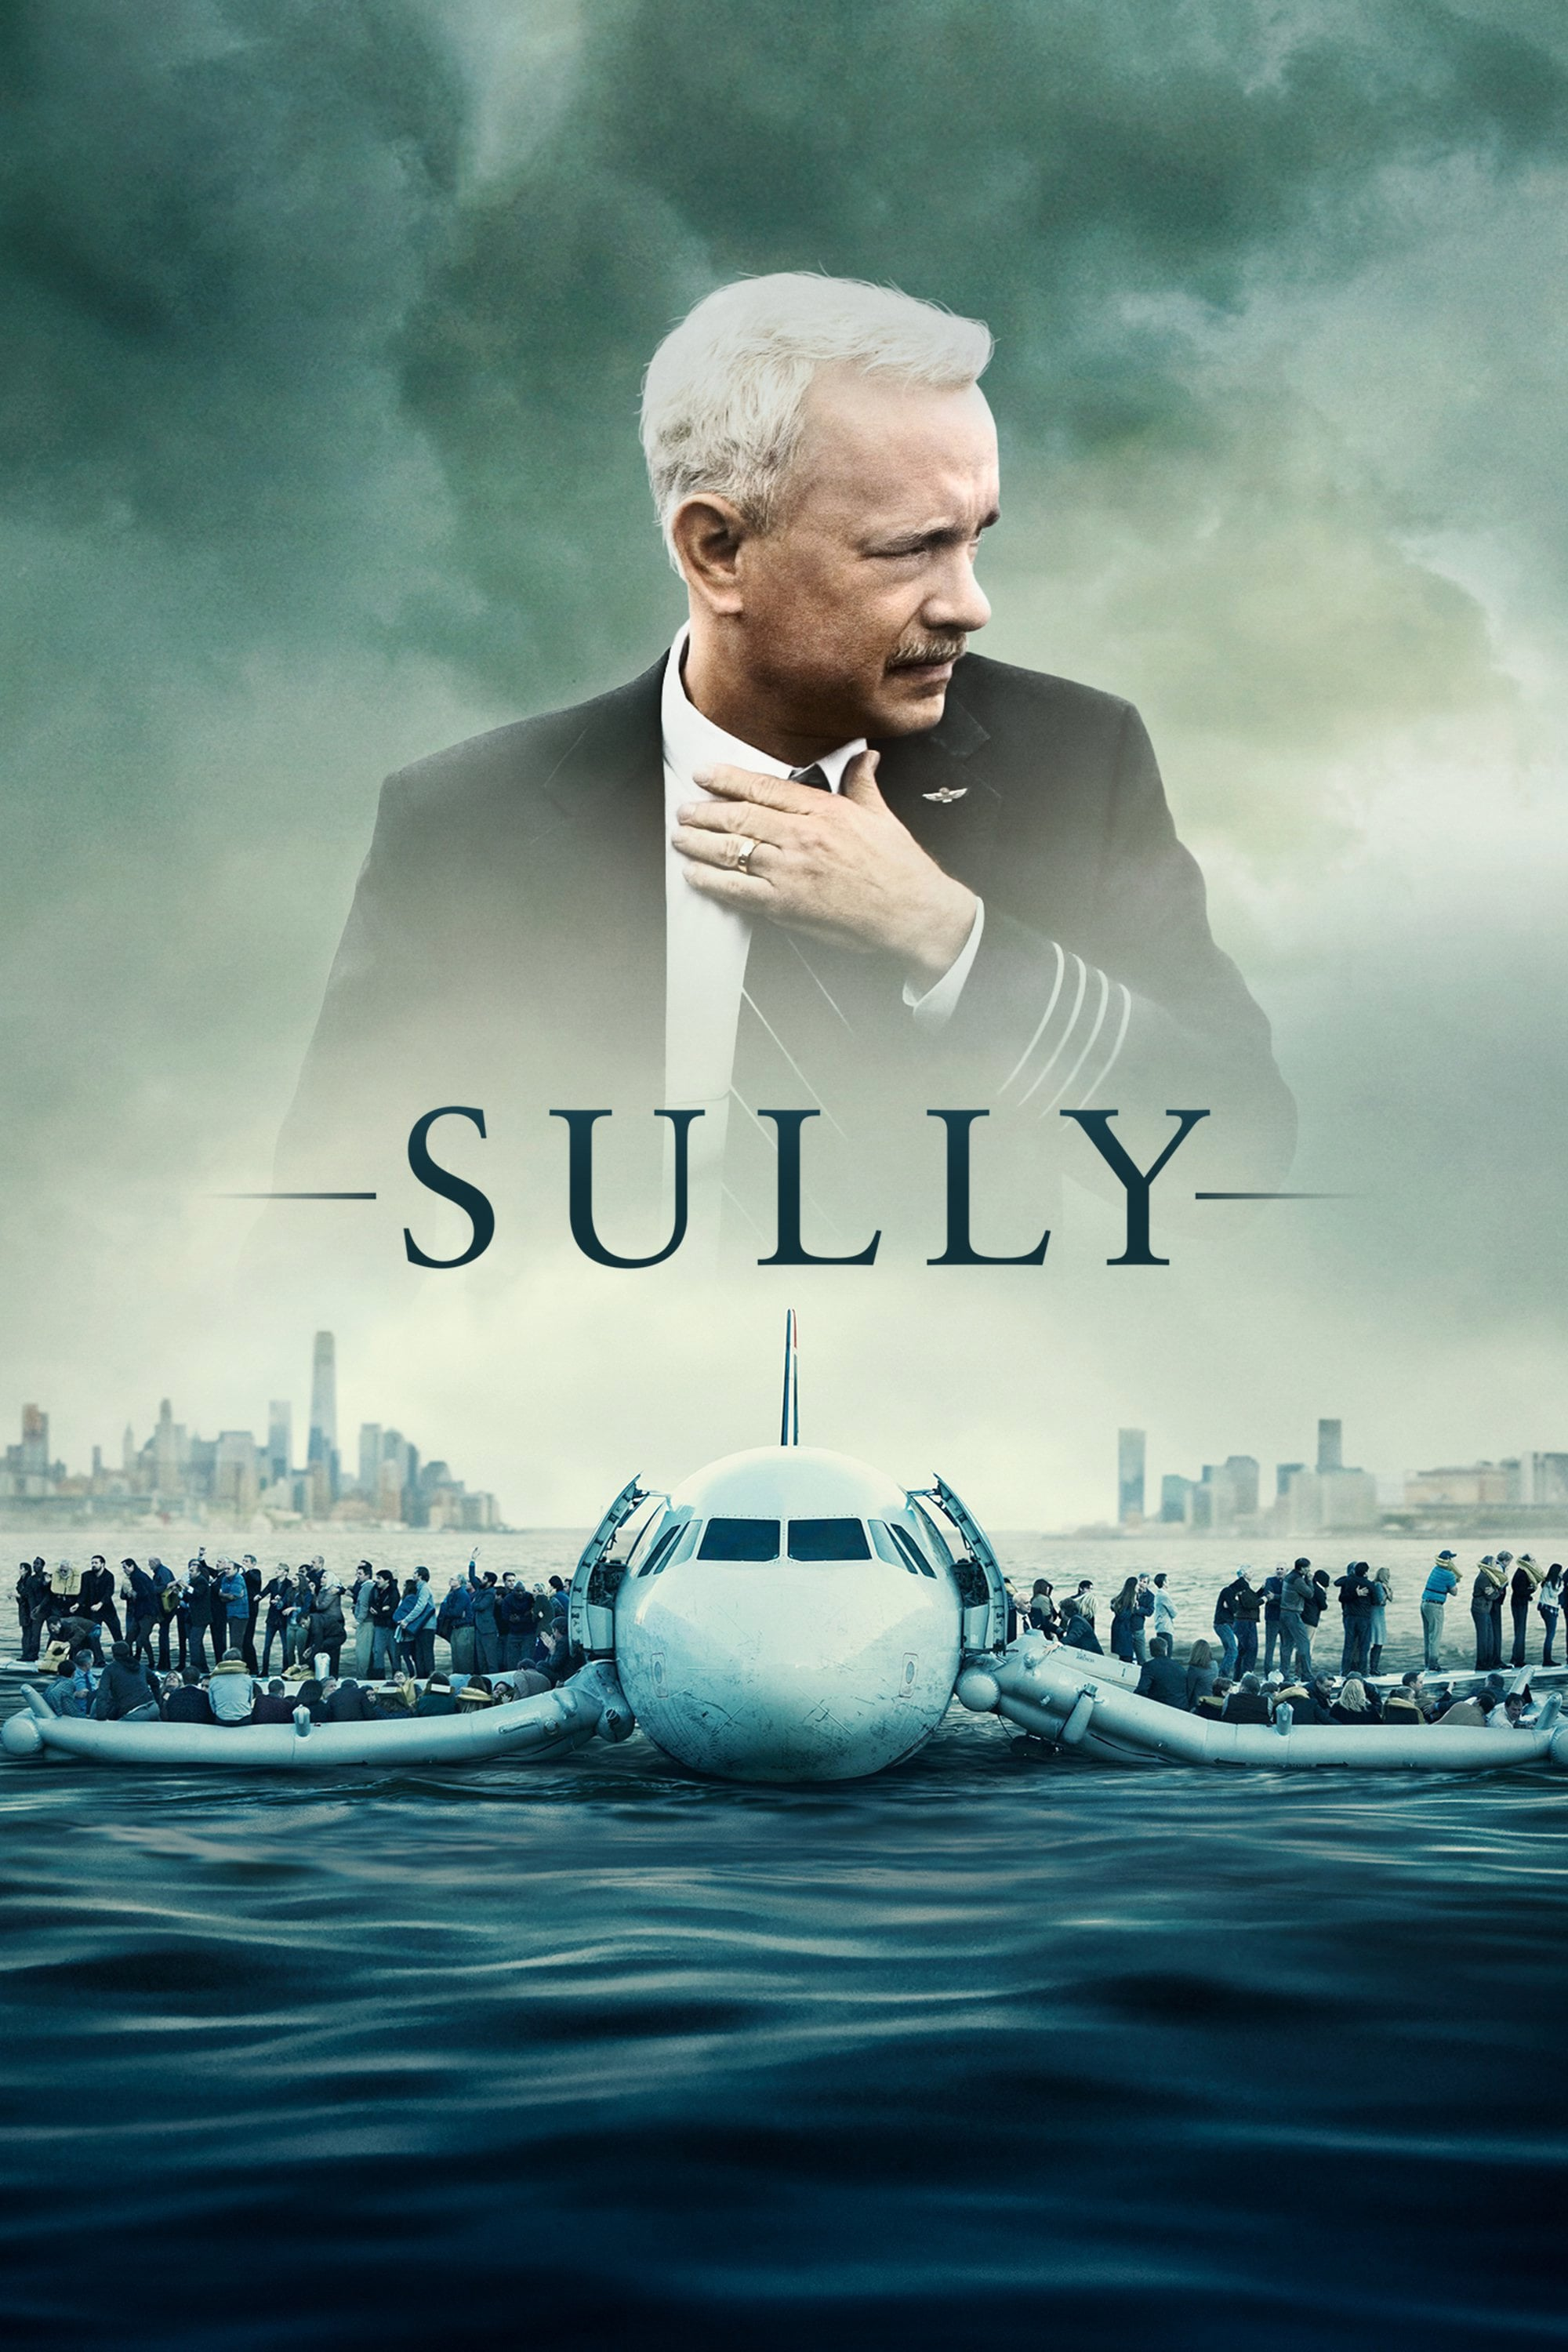 film sully 2016 en streaming vf complet filmstreaming hd com. Black Bedroom Furniture Sets. Home Design Ideas